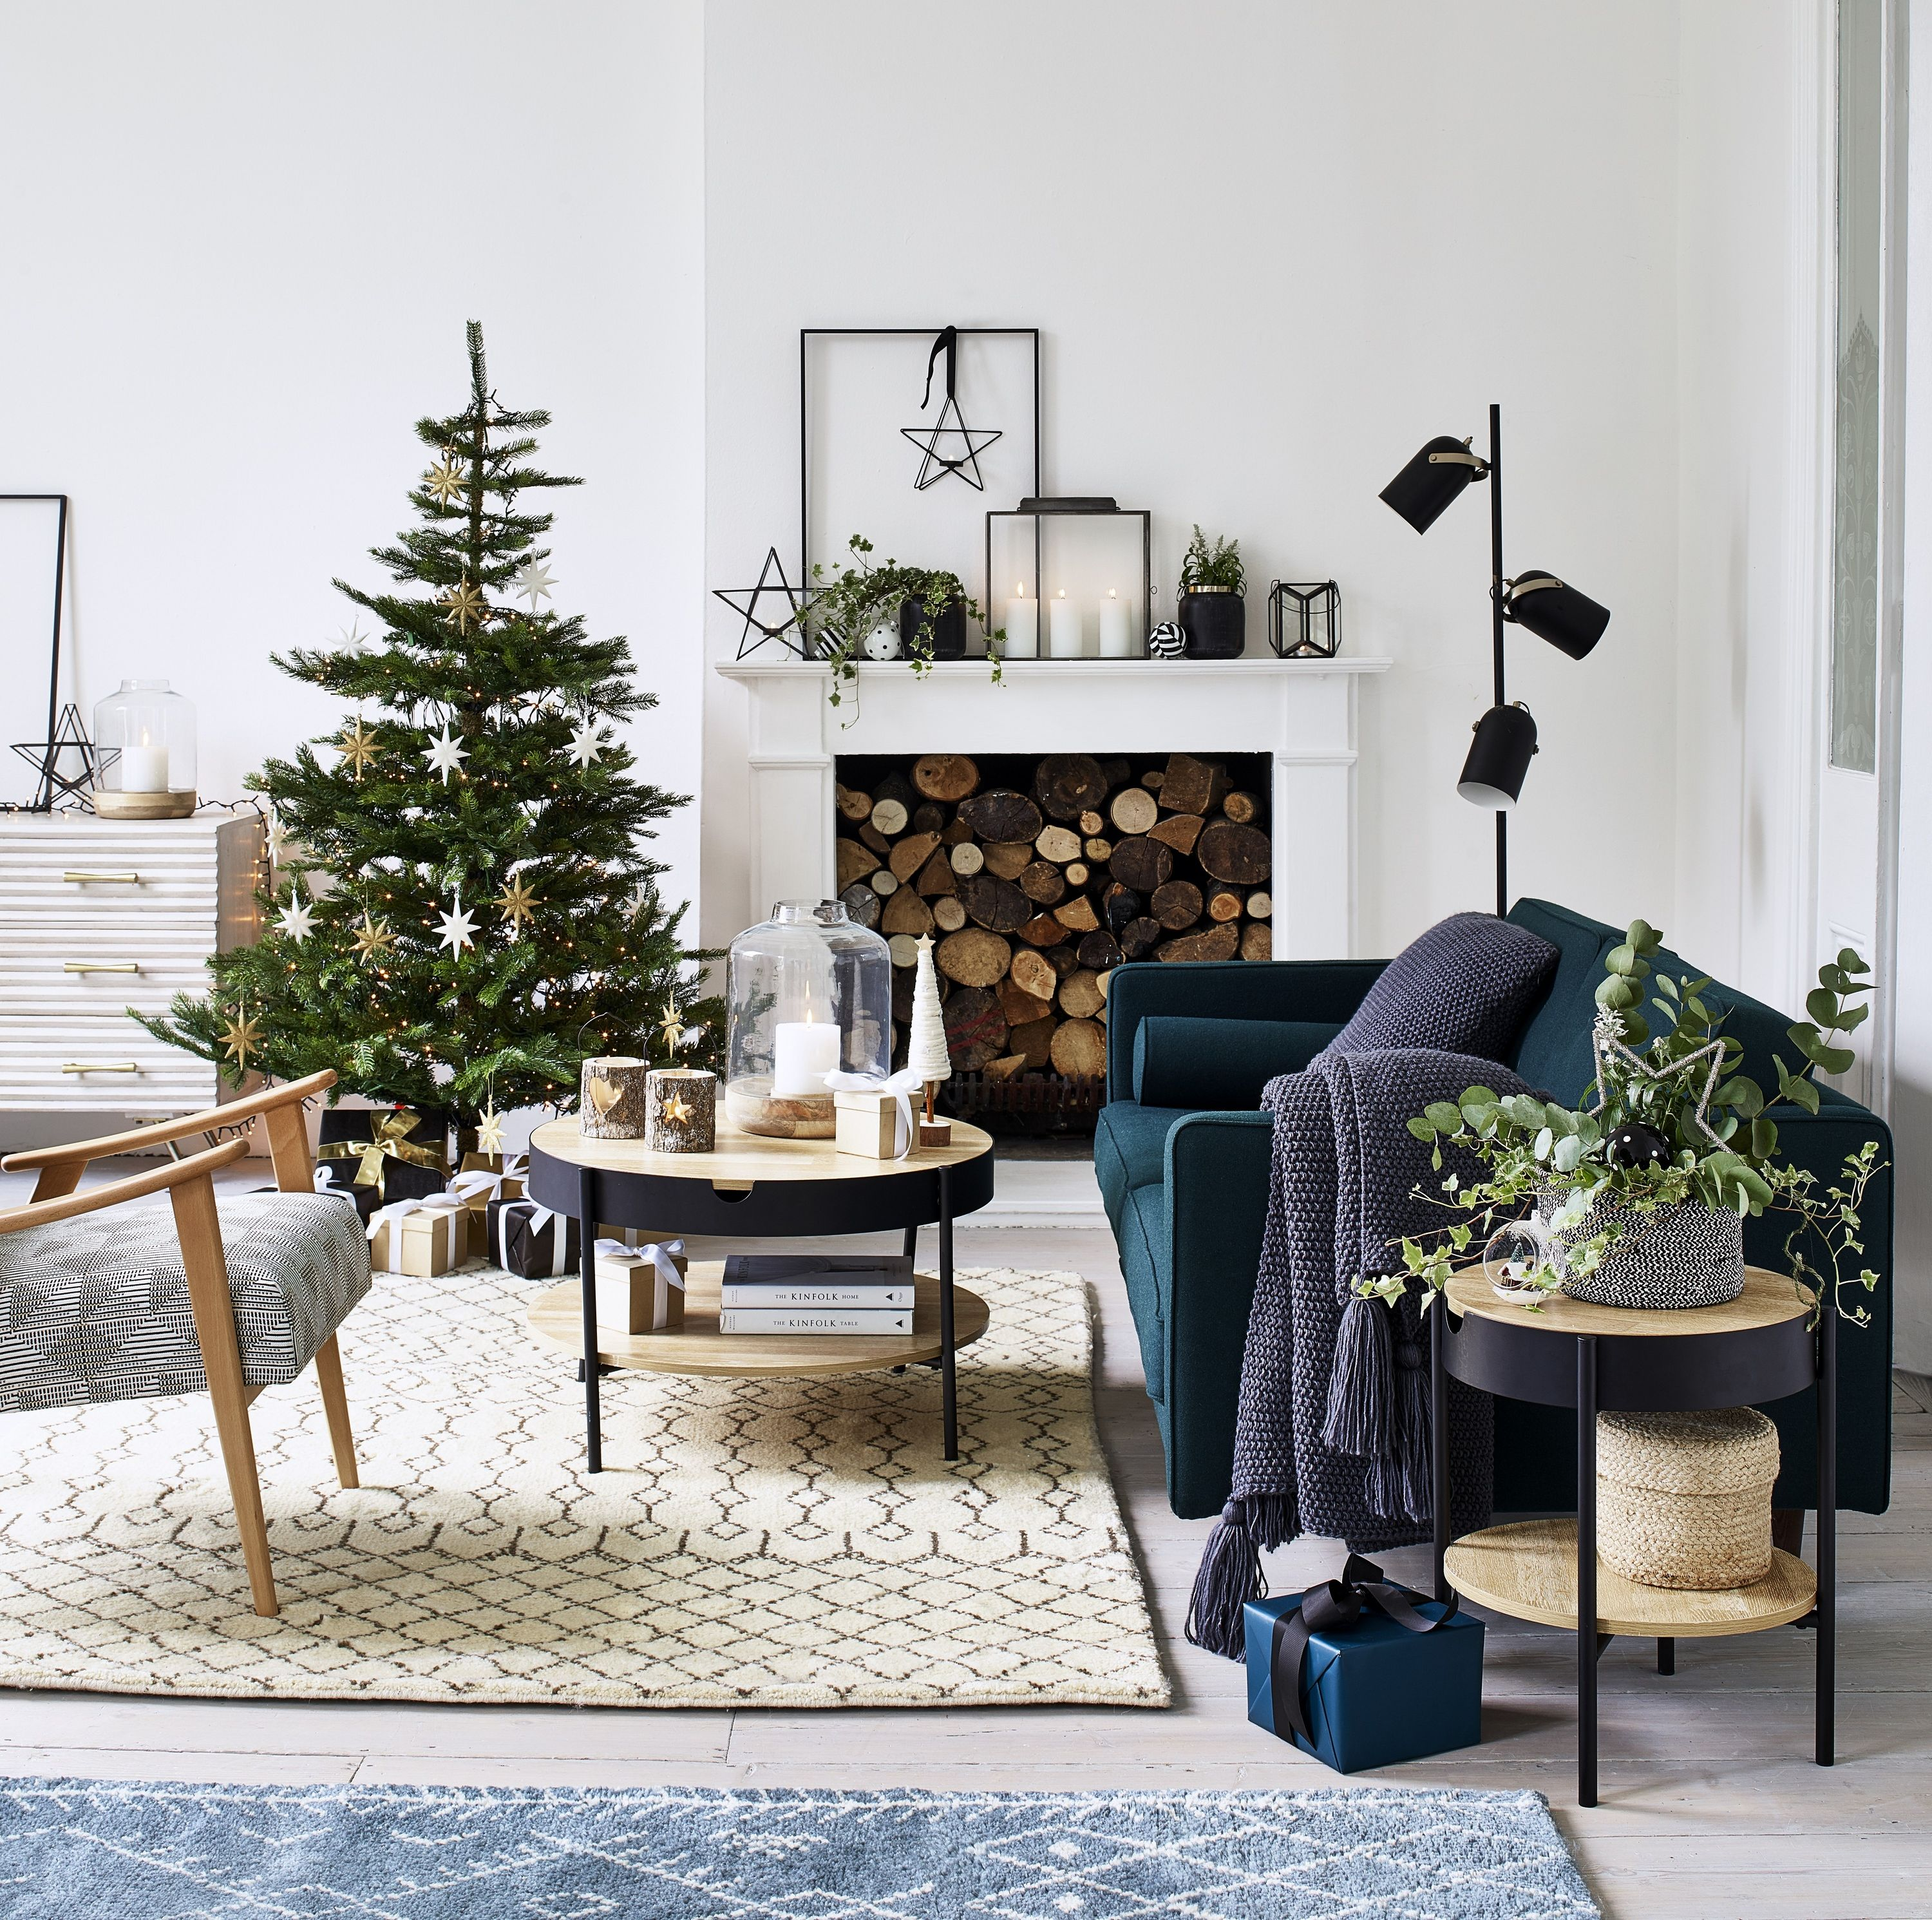 Christmas decor ideas for each key room in your home